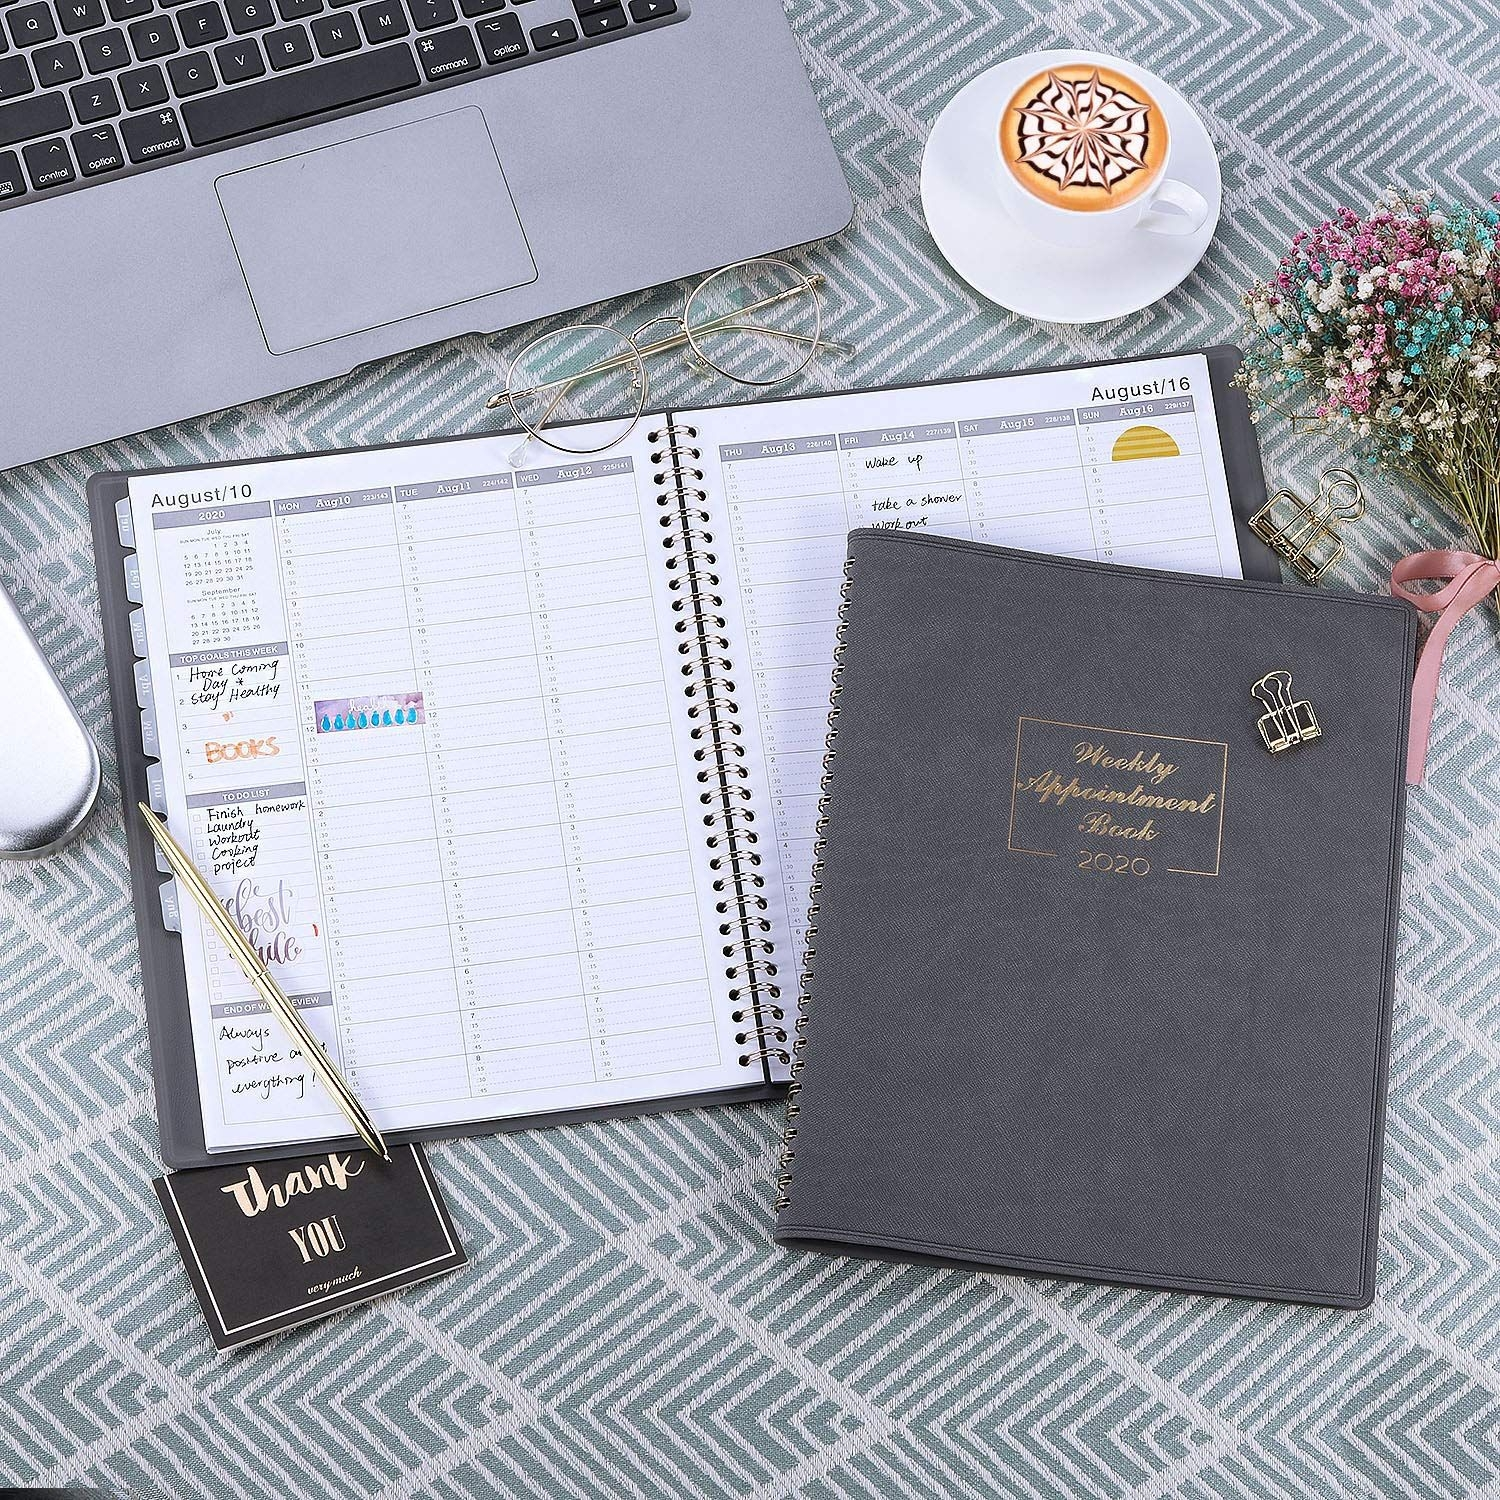 2020 Weekly Appointment Book & Planner 2020 Daily Hourly